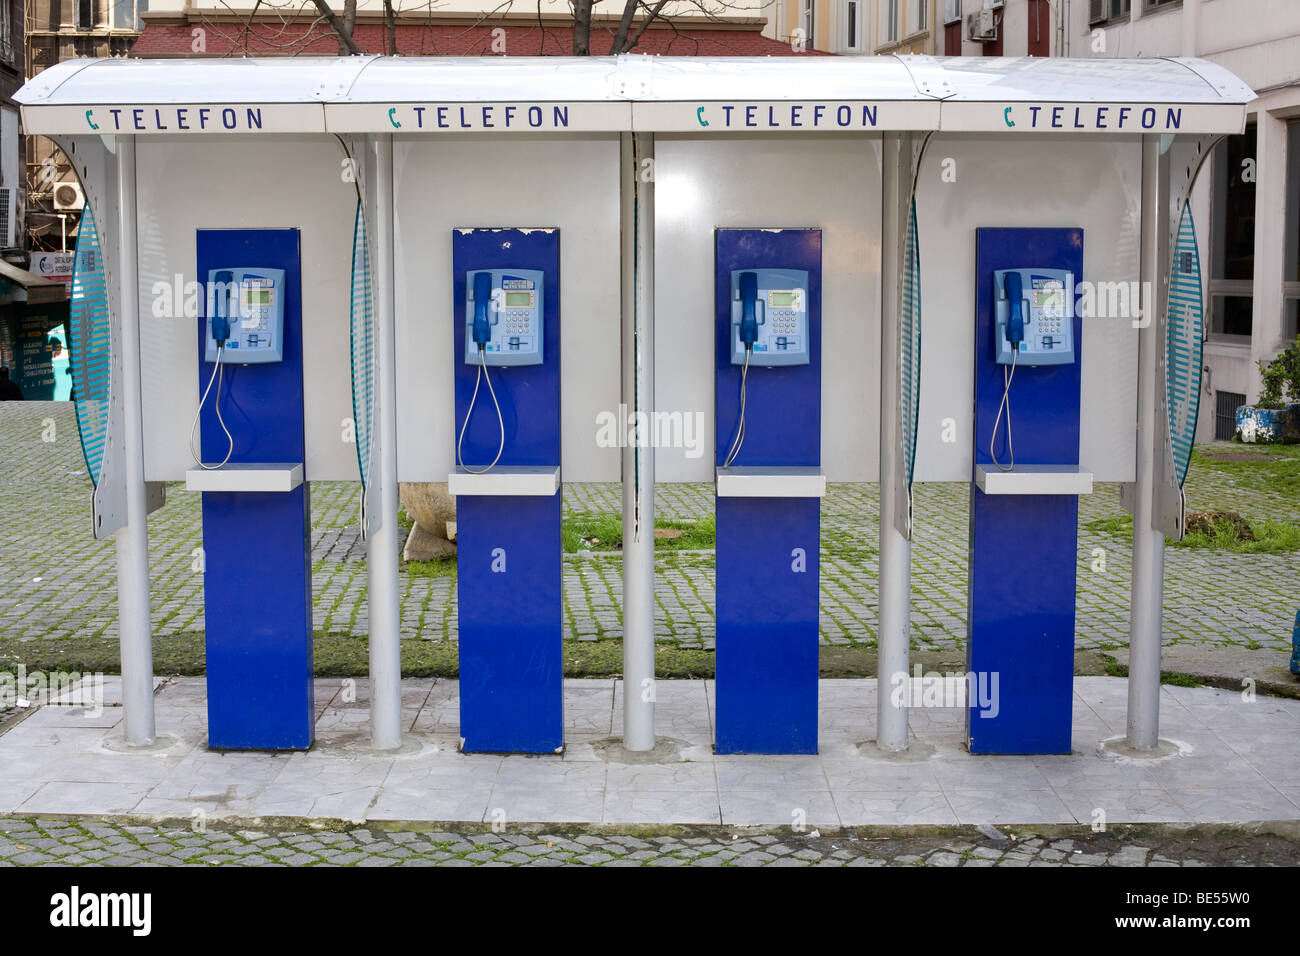 Row of telephone kiosks in Istanbul, Turkey, March 2009 - Stock Image